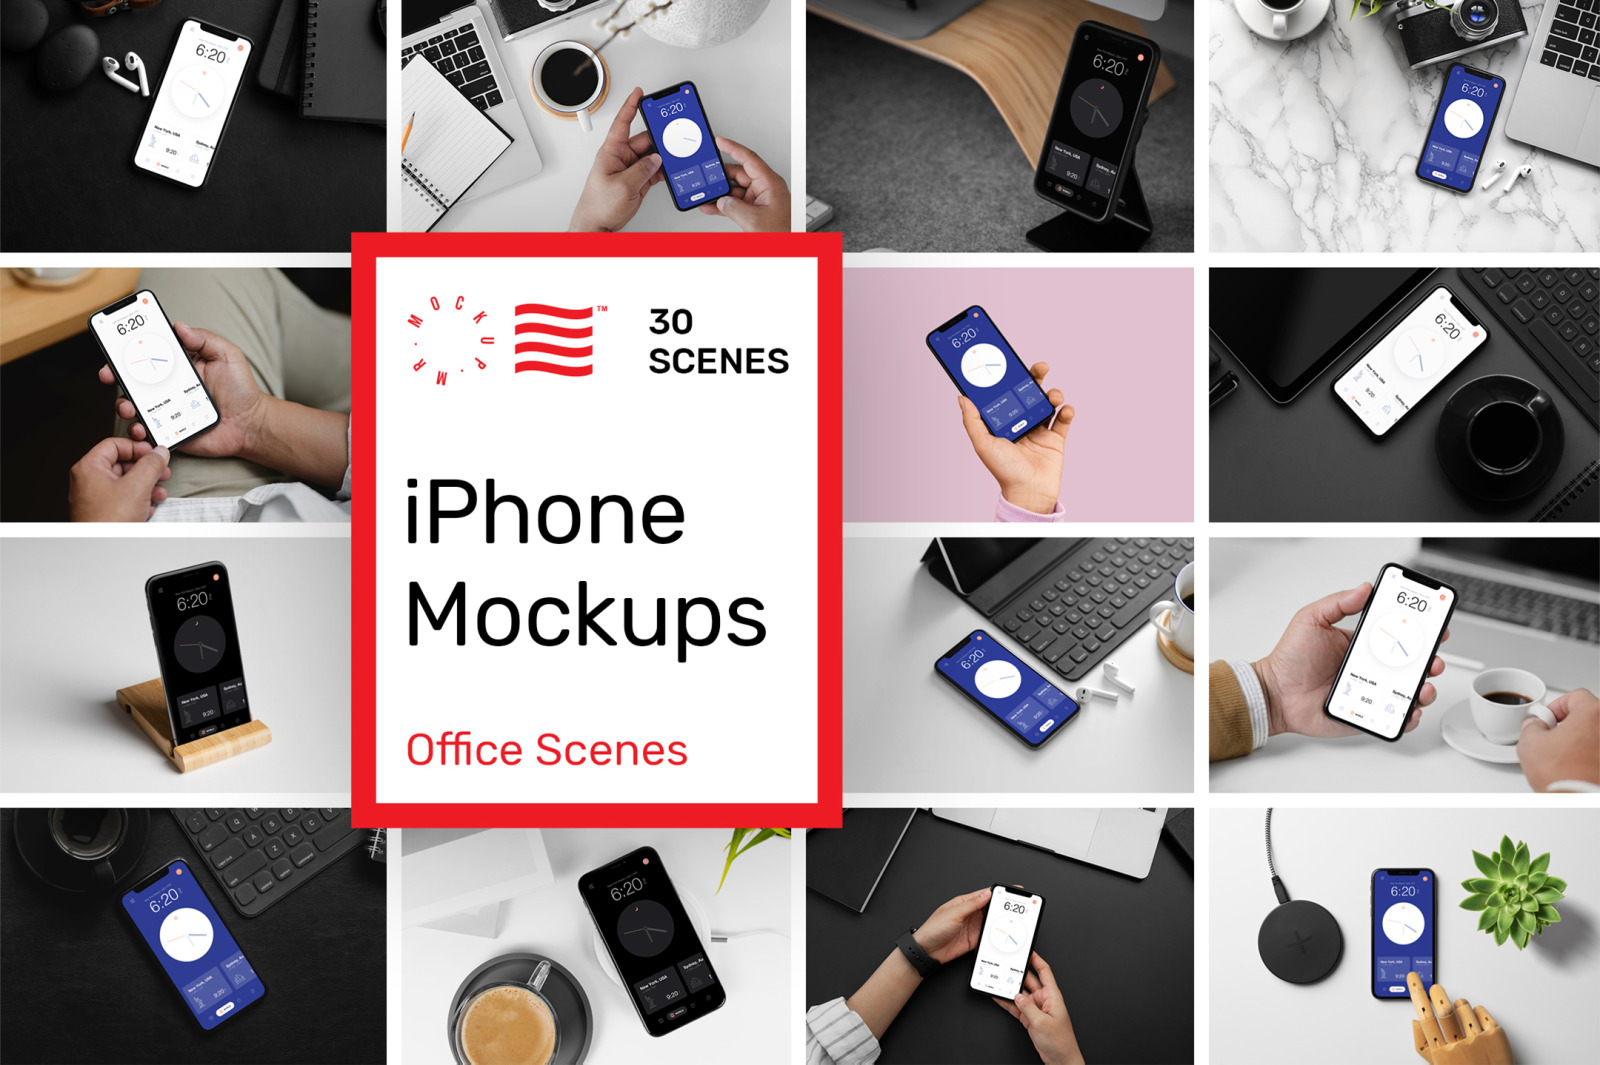 Download Iphone 11 Mockups In Device Mockups On Yellow Images Creative Store PSD Mockup Templates